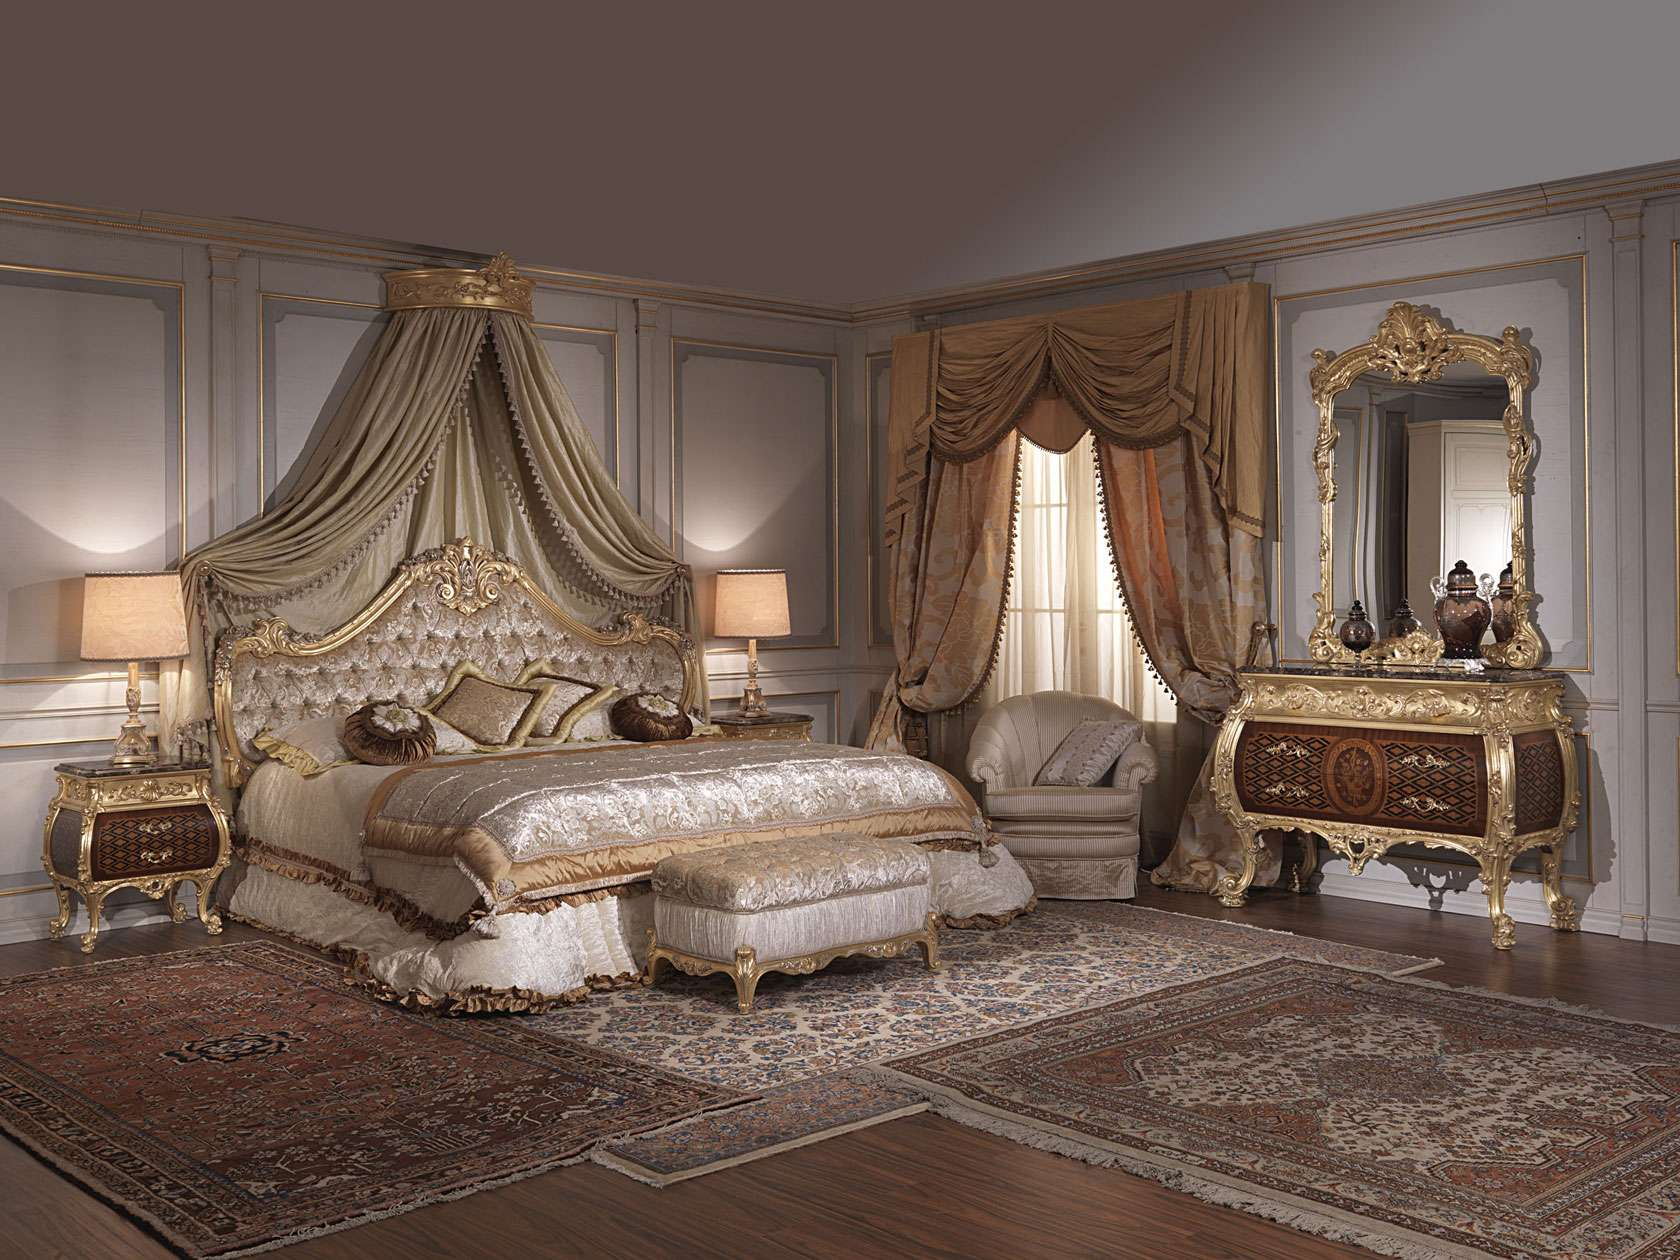 lit style italien. Black Bedroom Furniture Sets. Home Design Ideas